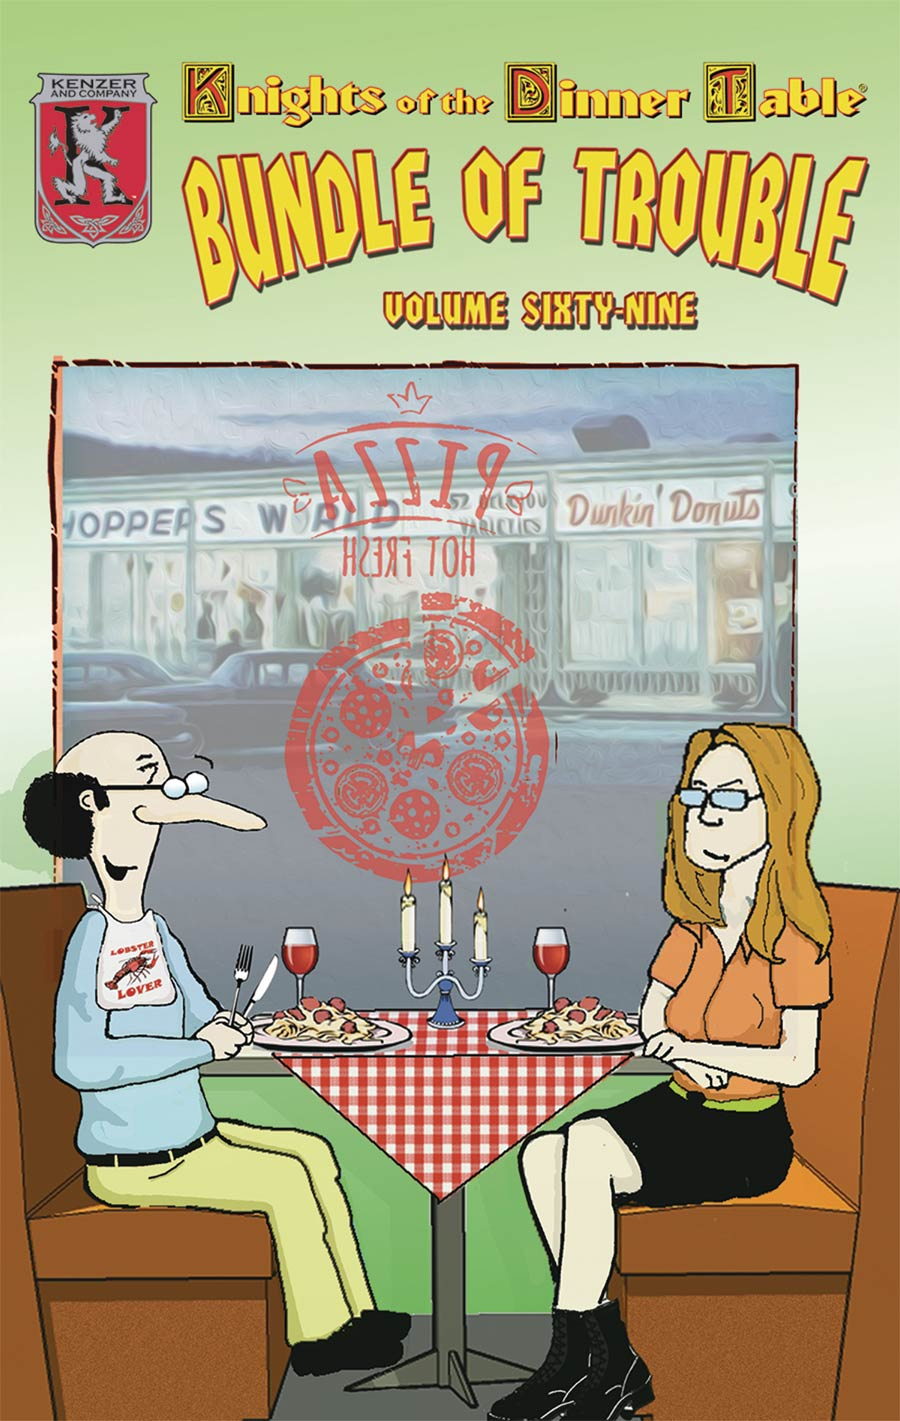 Knights Of The Dinner Table Bundle Of Trouble Vol 69 TP